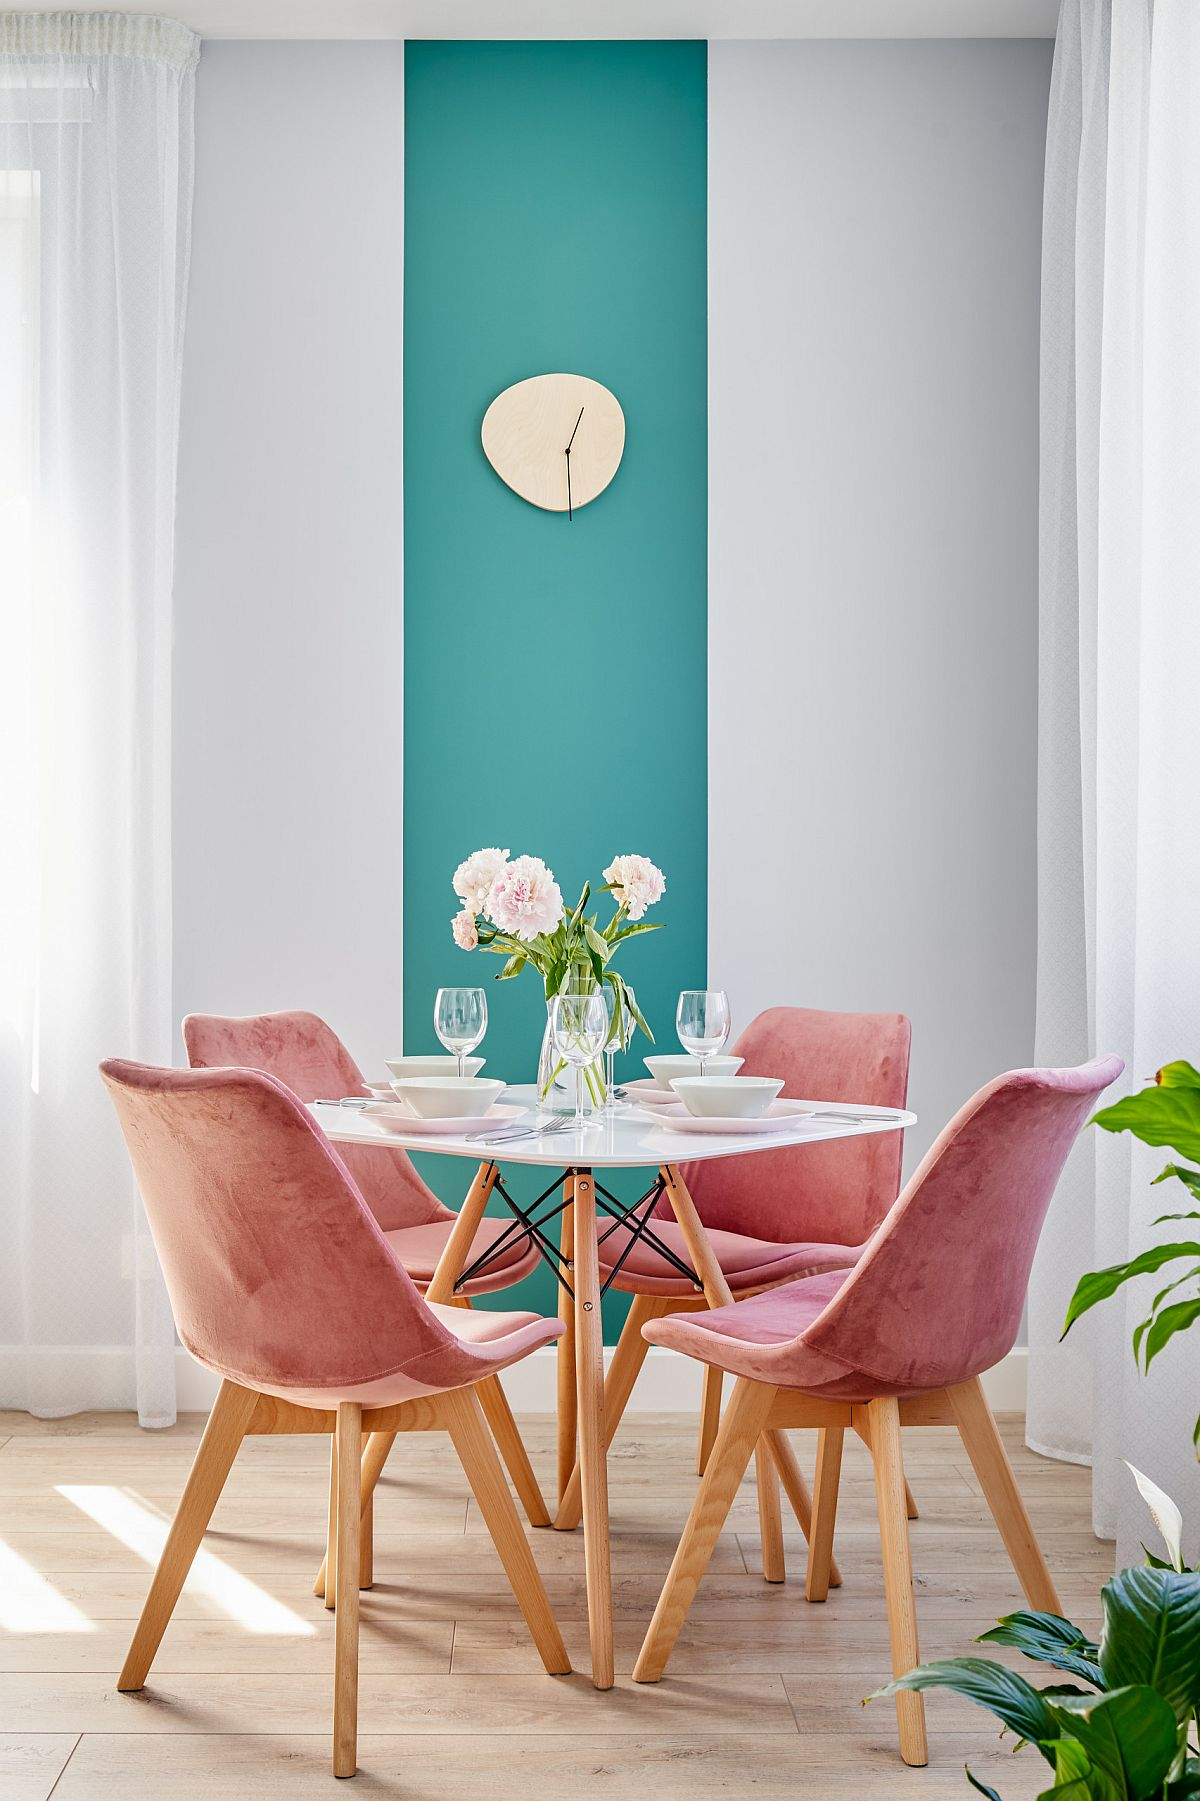 Chairs-around-the-dining-table-and-the-backdrop-add-color-to-the-dining-room-52120